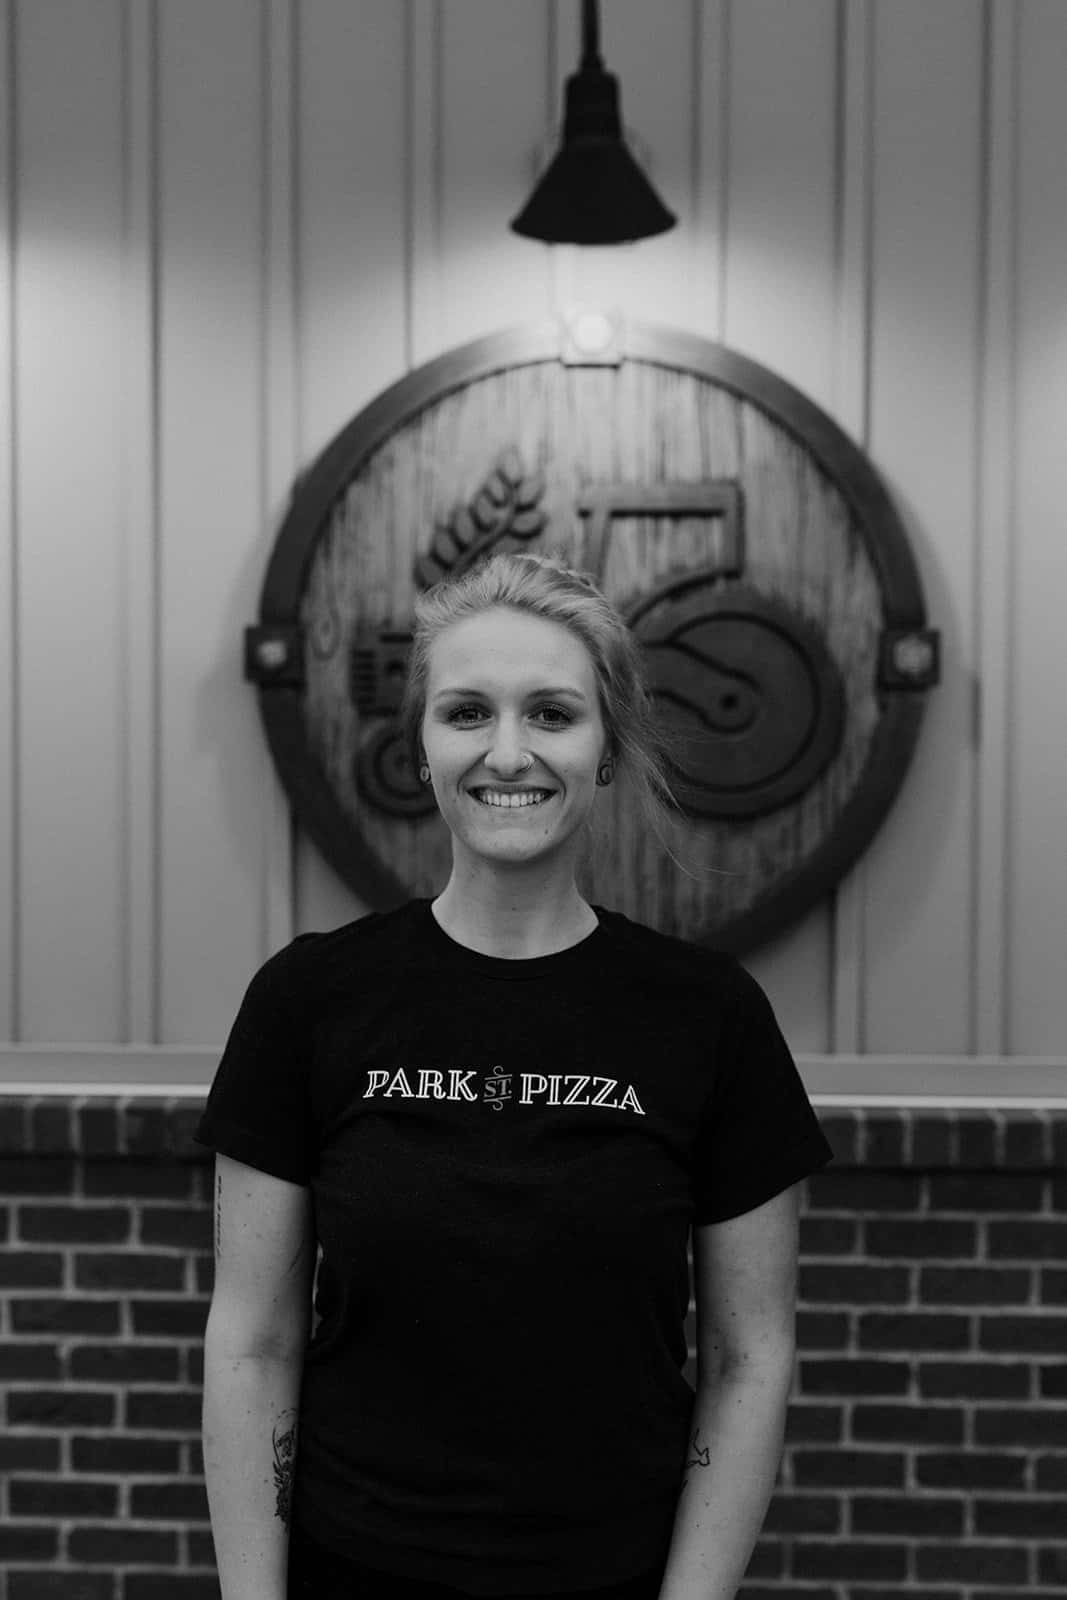 Park Street Pizza / Commercial Shoot 352